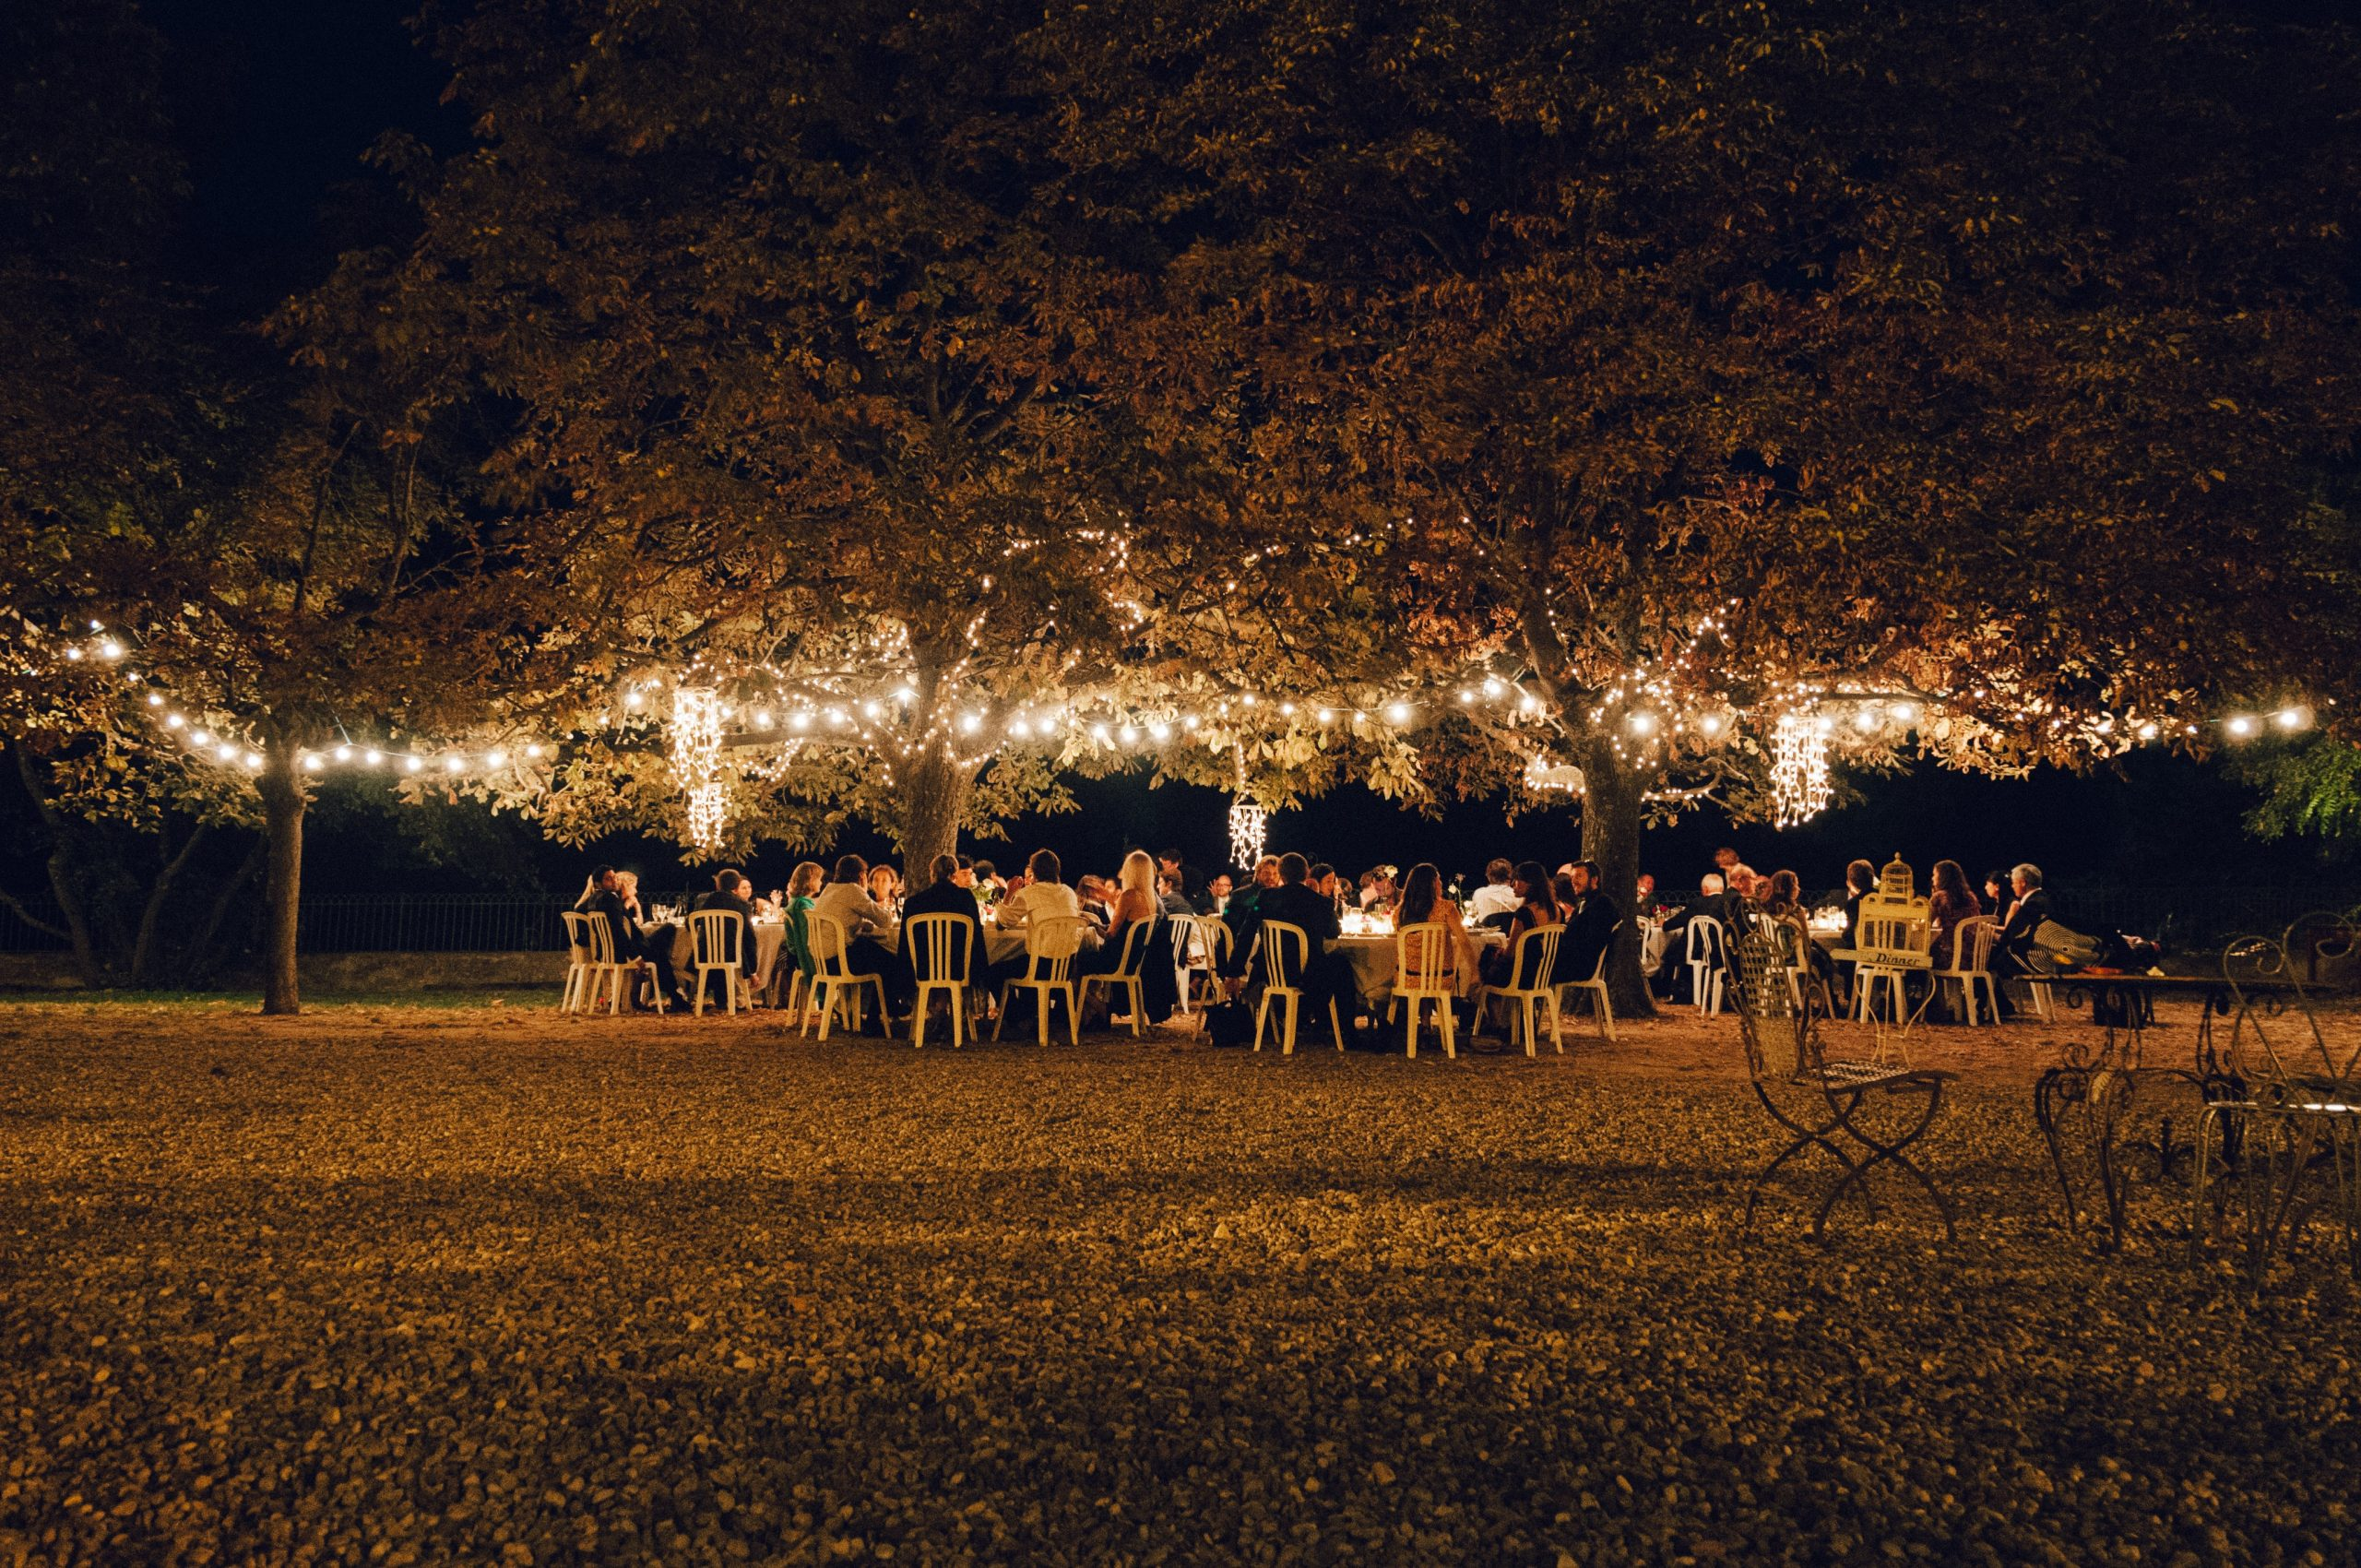 An outdoor wedding venue with lighting during the evening